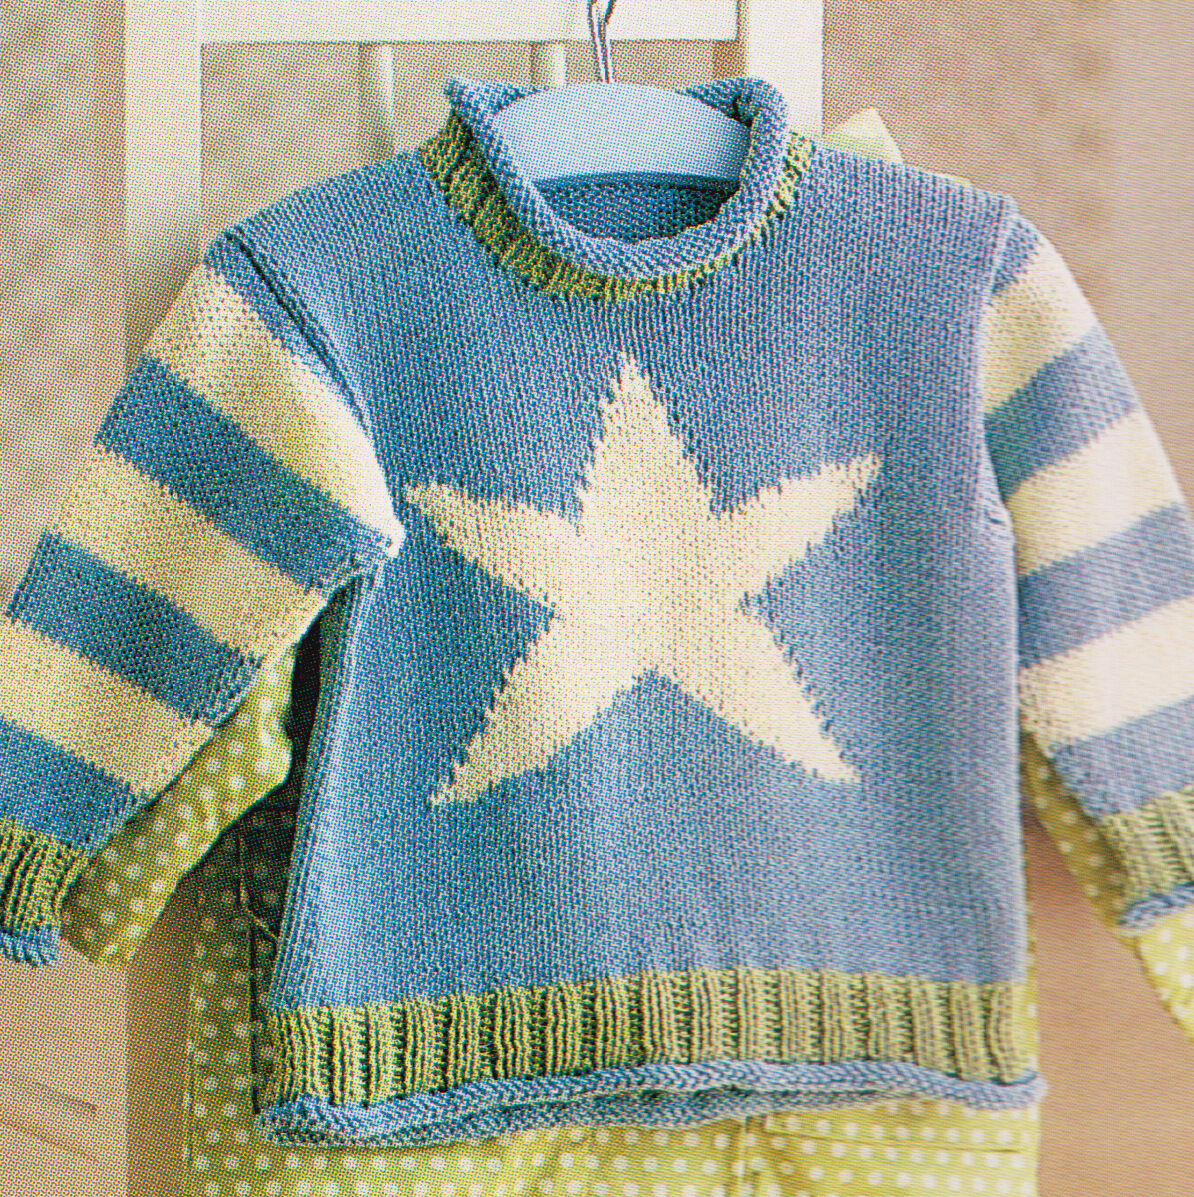 Children s Blanket Pattern Knitting : Starfish Childrens Baby Summer Sweater 6mths - 4 yrs Cotton Knitting Pattern ...